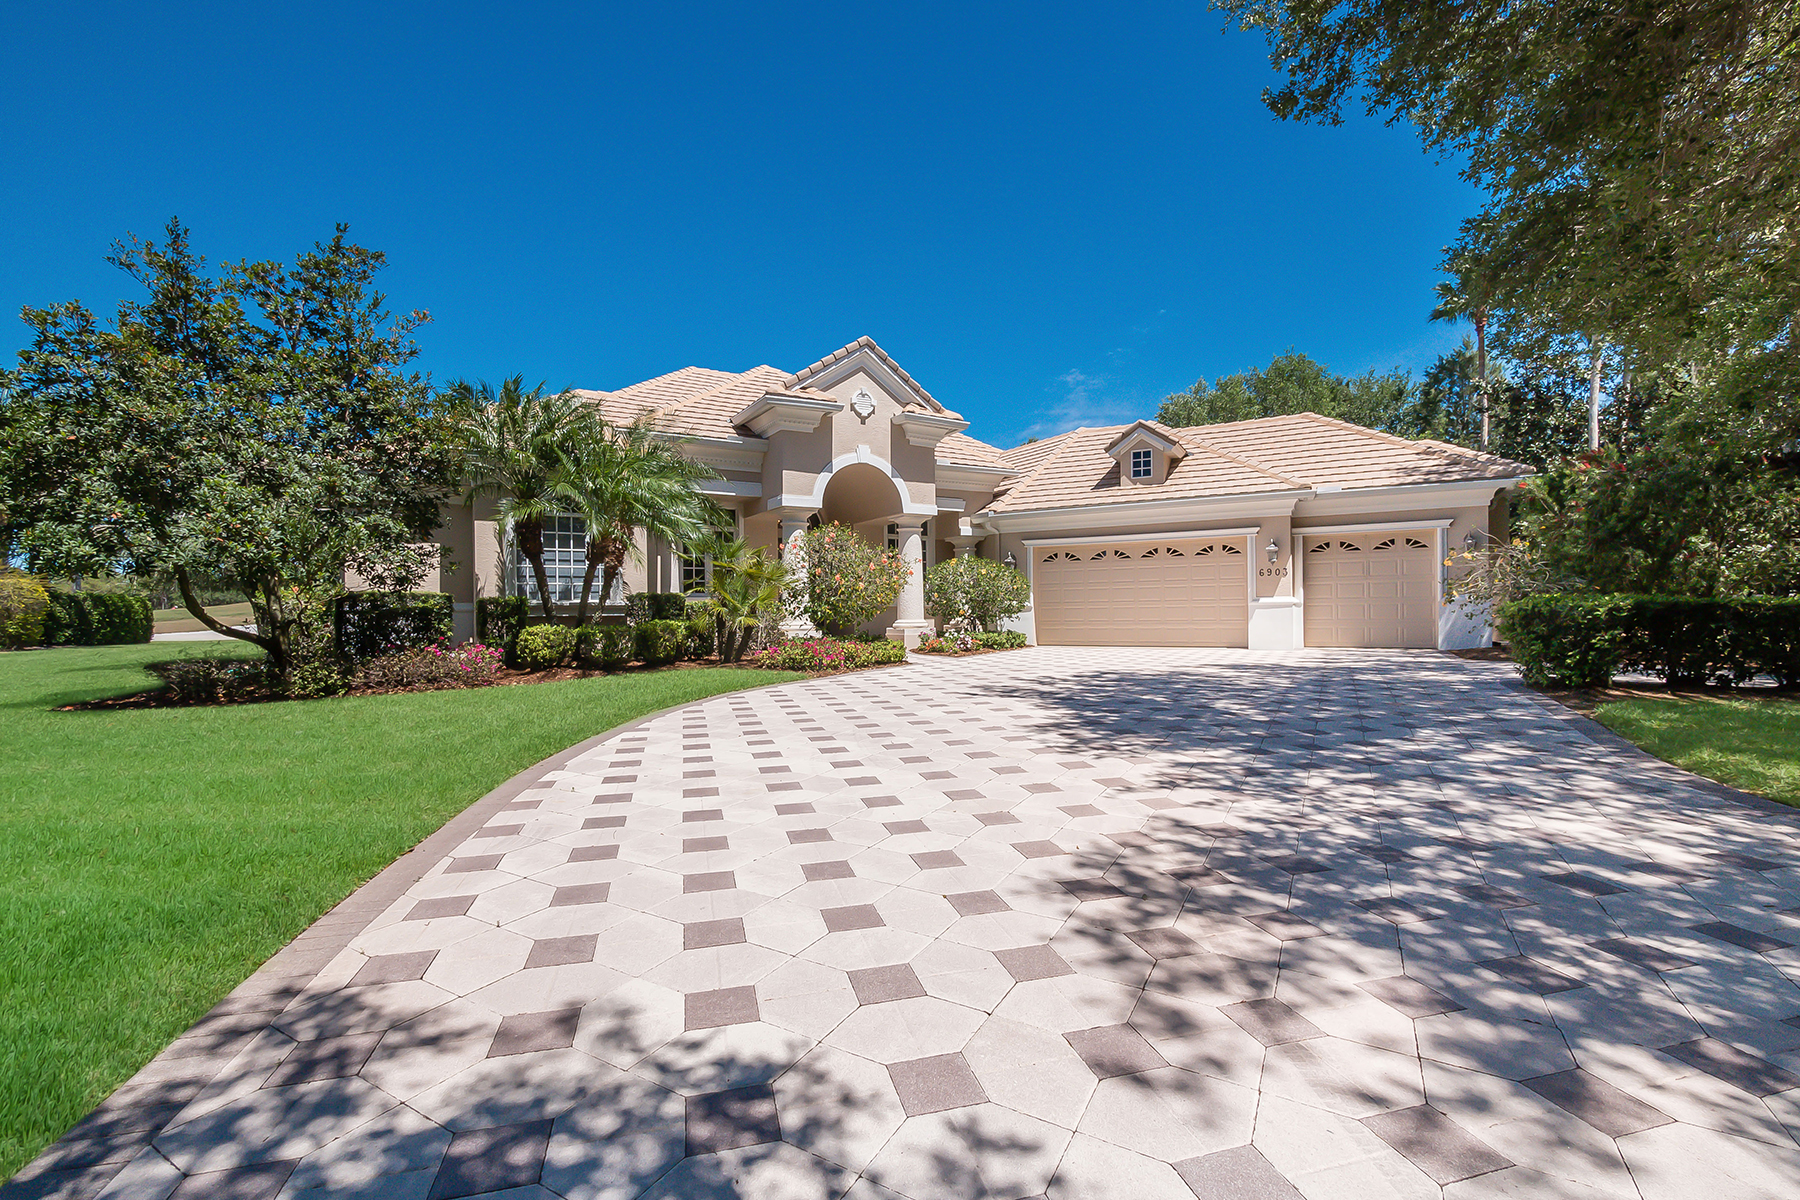 Single Family Home for Sale at LAKEWOOD RANCH 6903 Westchester Cir Lakewood Ranch, Florida, 34202 United States